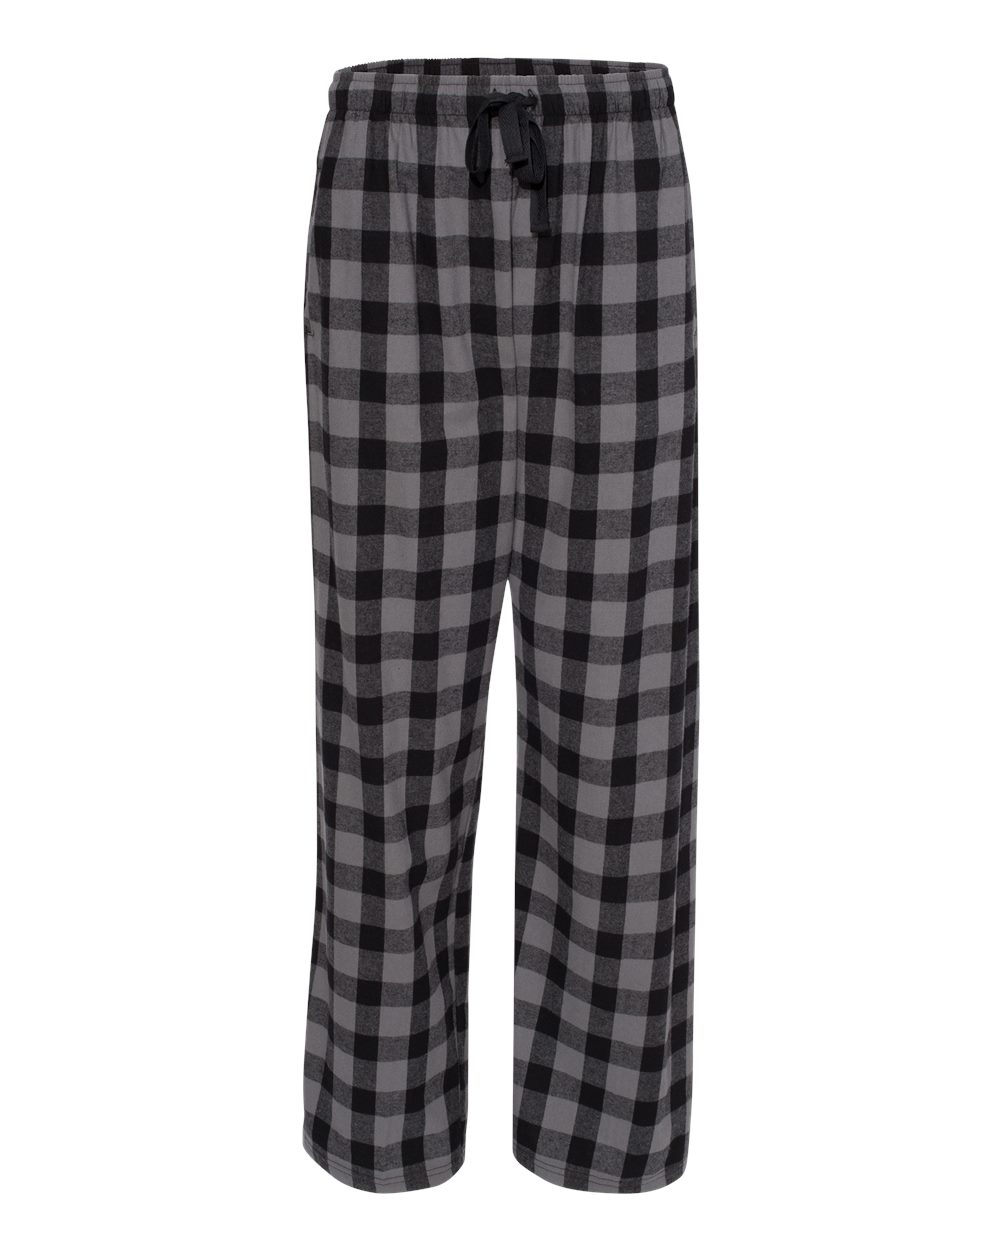 Boxercraft-Unisex-Flannel-Pants-With-Pockets-Pajama-Pants-F20-up-to-2XL thumbnail 12